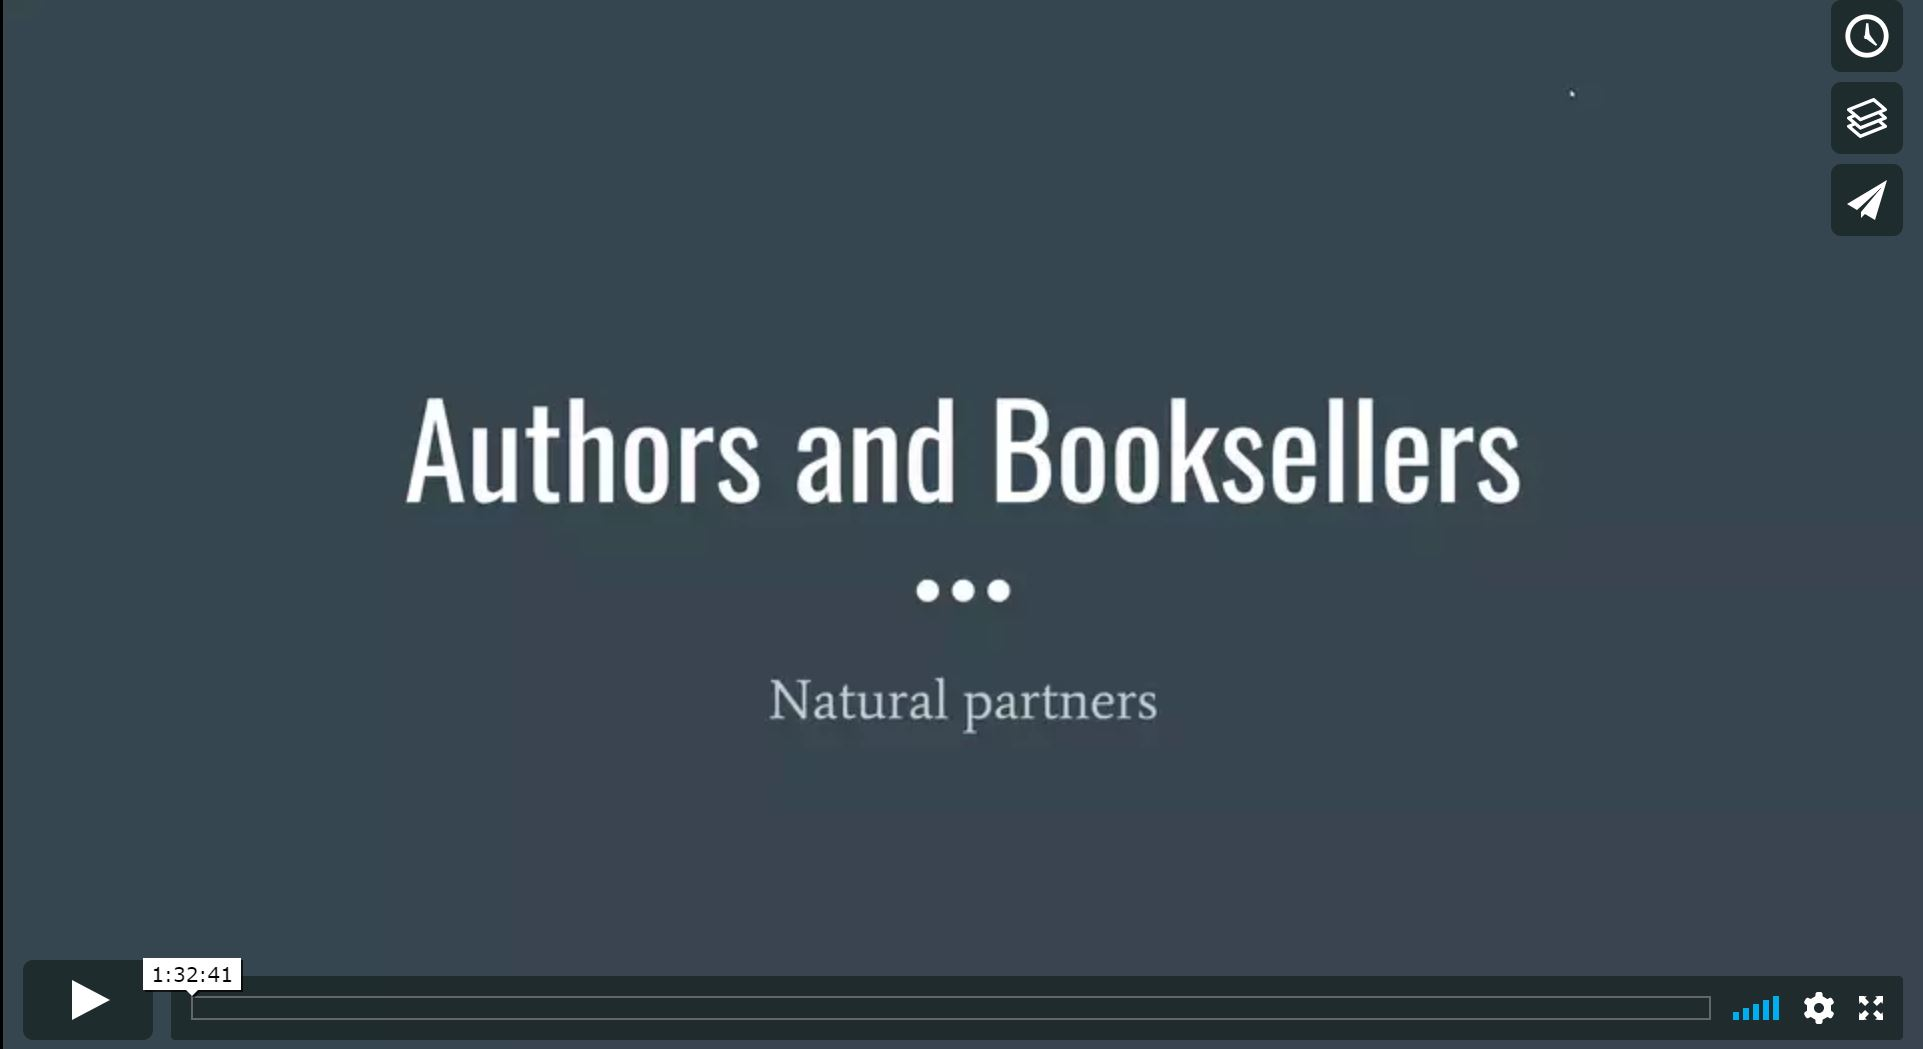 Authors & Booksellers: Natural Partners